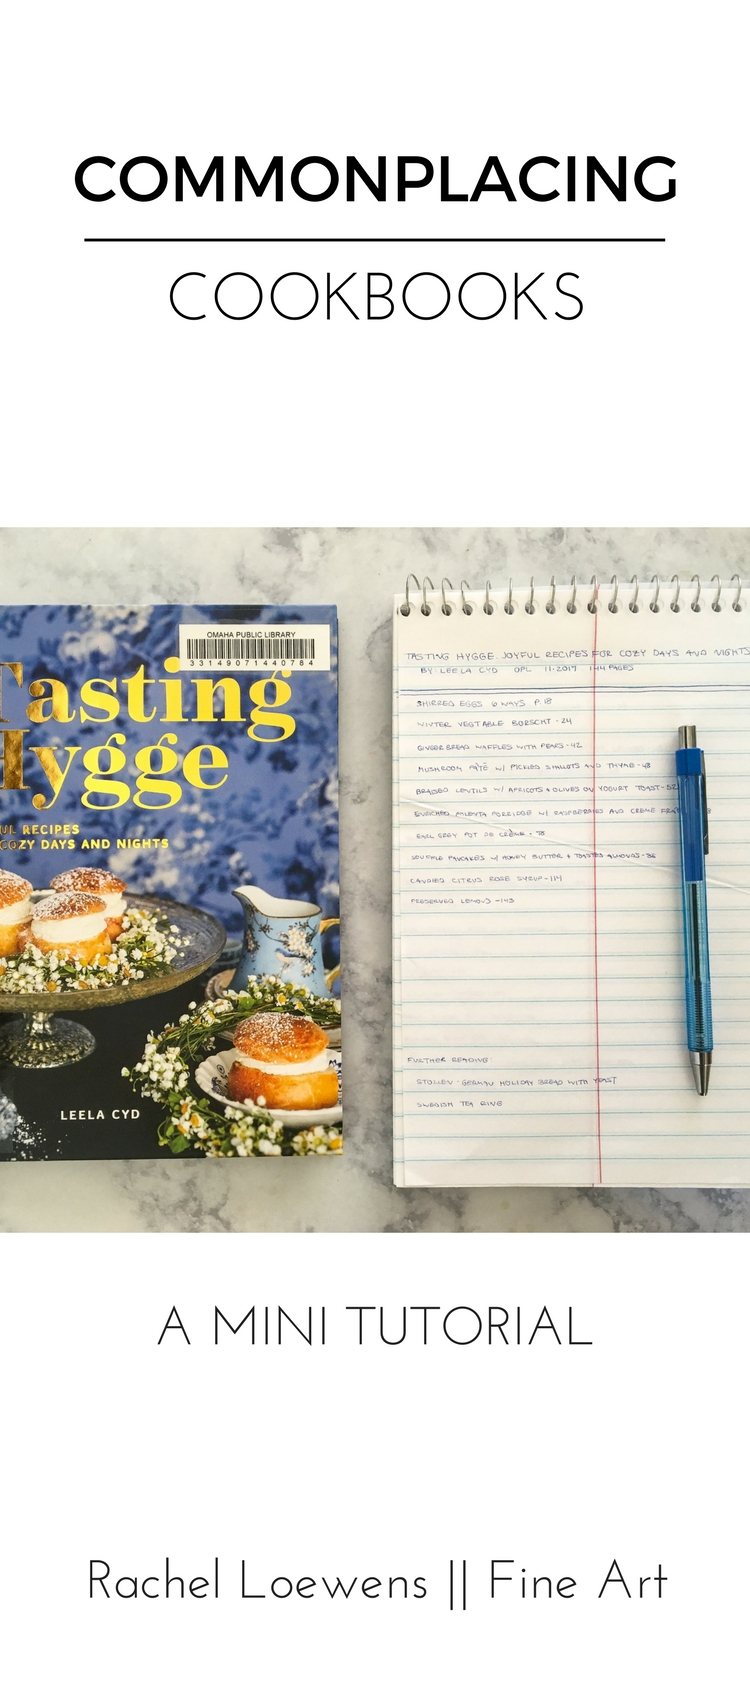 Commonplacing Cookbooks || a mini tutorial || Rachel Loewens Fine Art